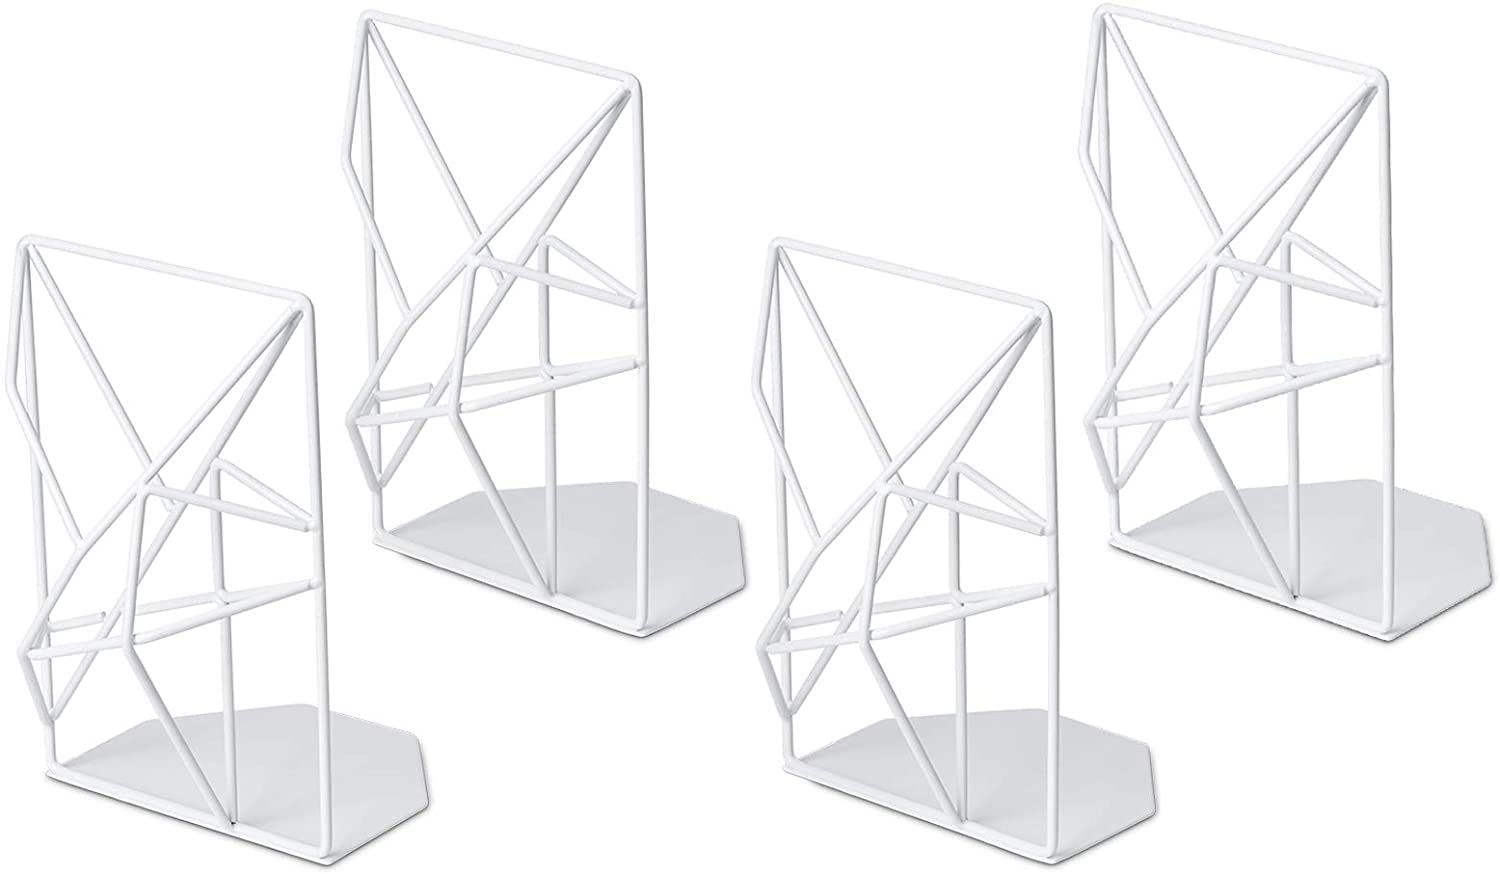 SRIWATANA Book Ends White, Decorative Metal Bookends for Shelves, Unique Geometric Design(2 Pairs/4 Pieces)